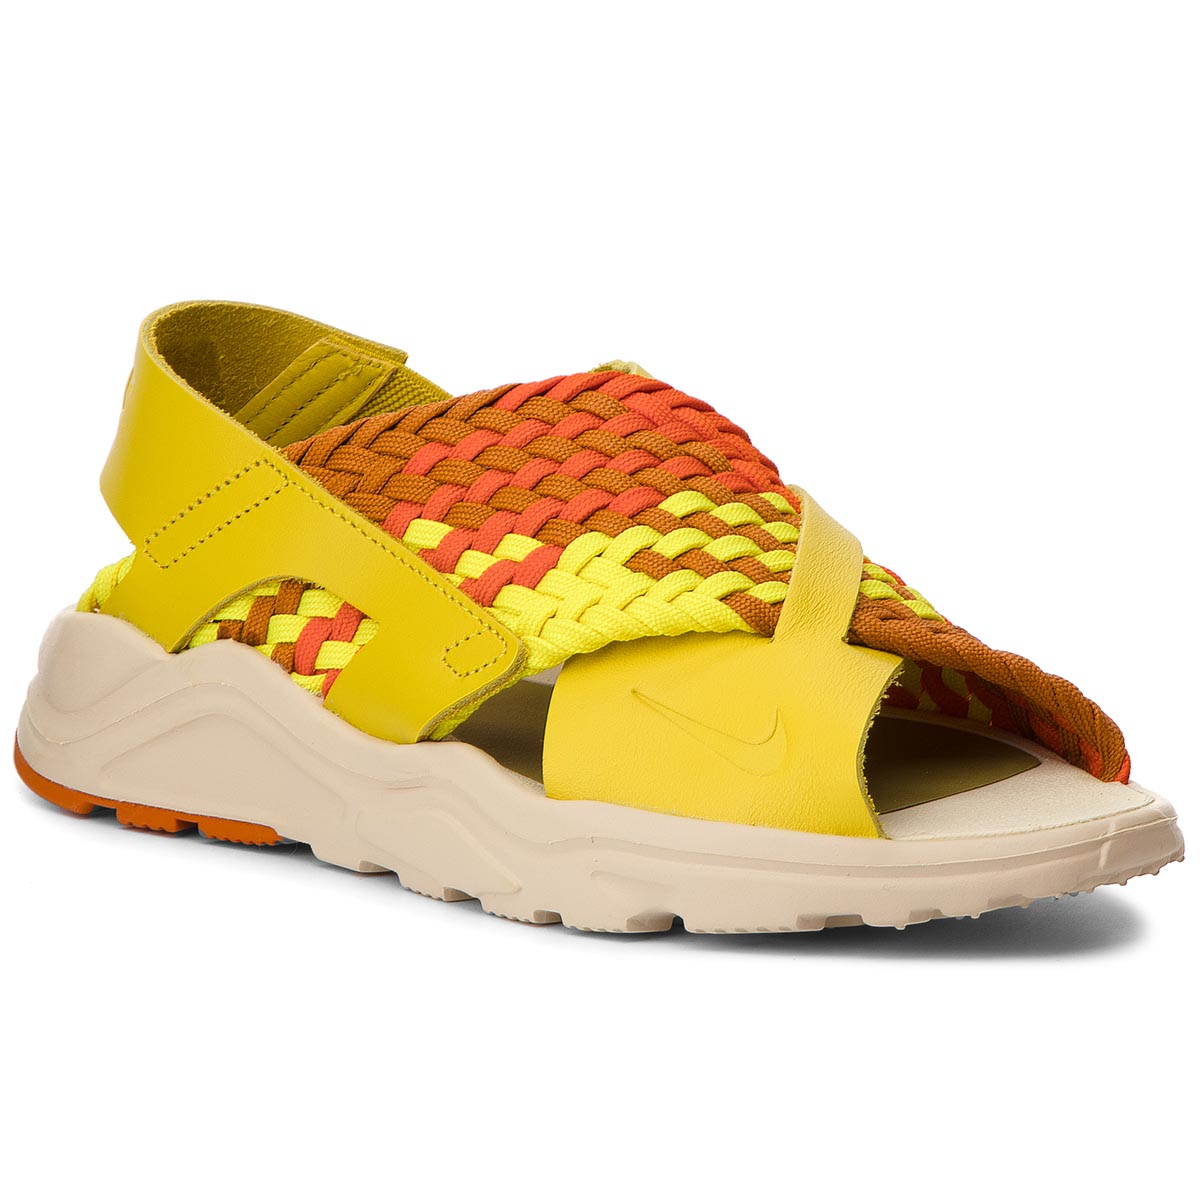 Sandale NIKE - Air Huarache Huarache Ultra 885118 701 Bright Citron/Monarch